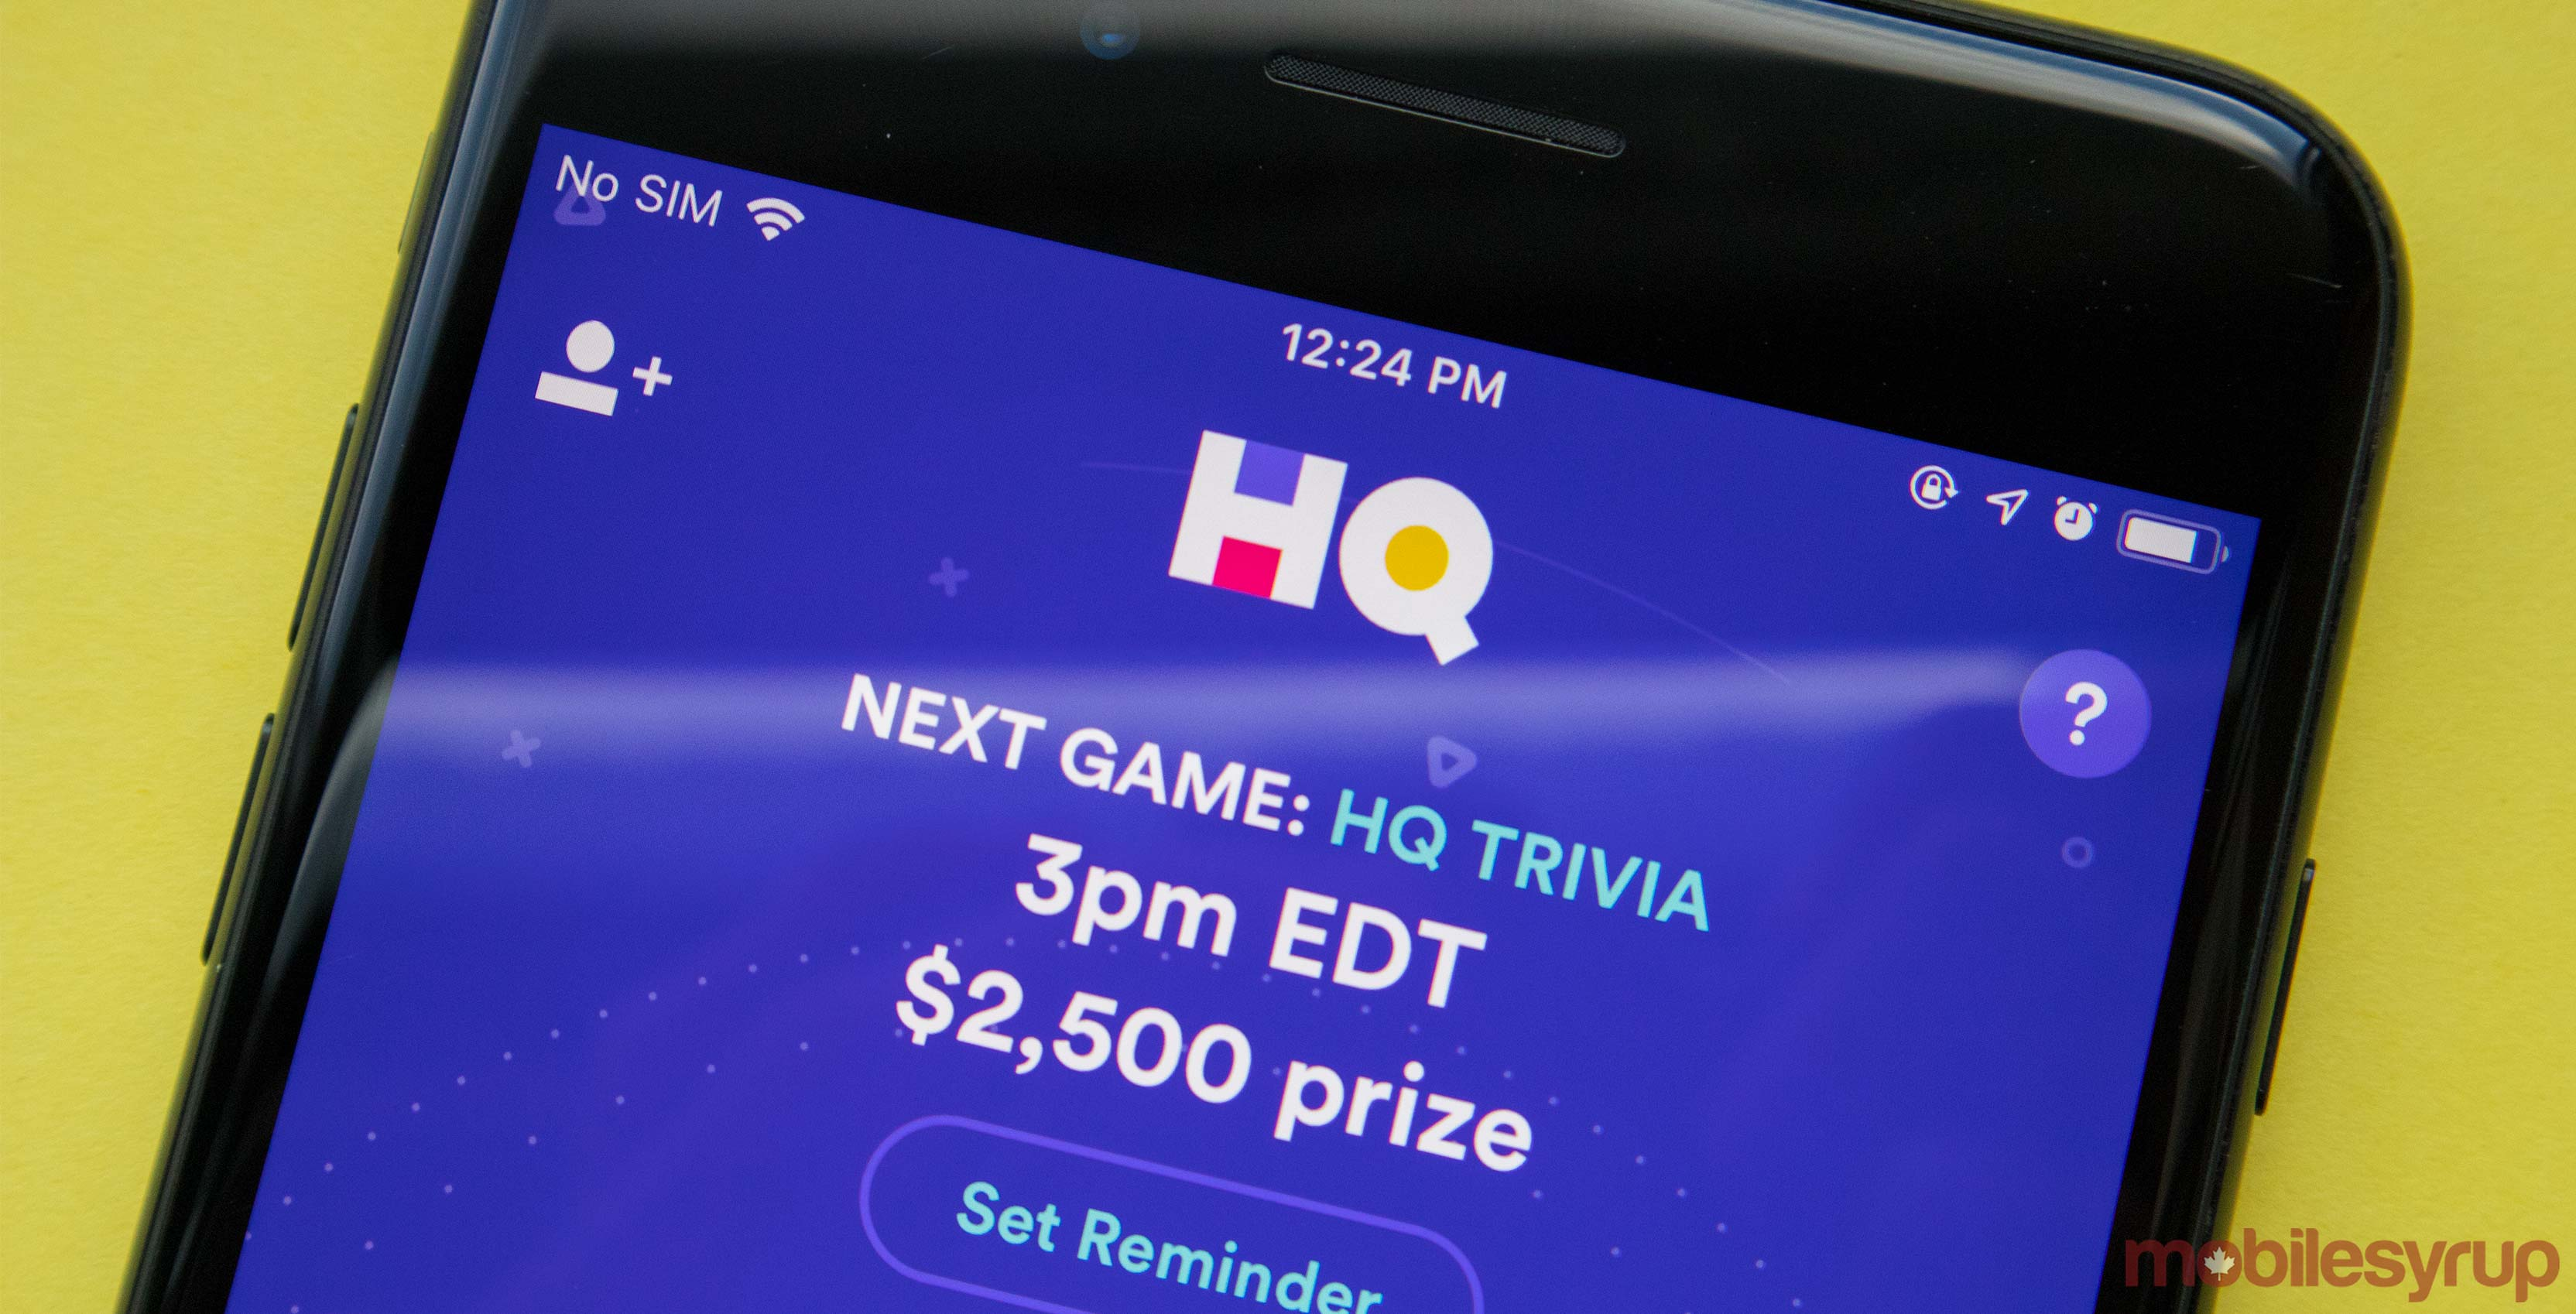 HQ Trivia on iPhone